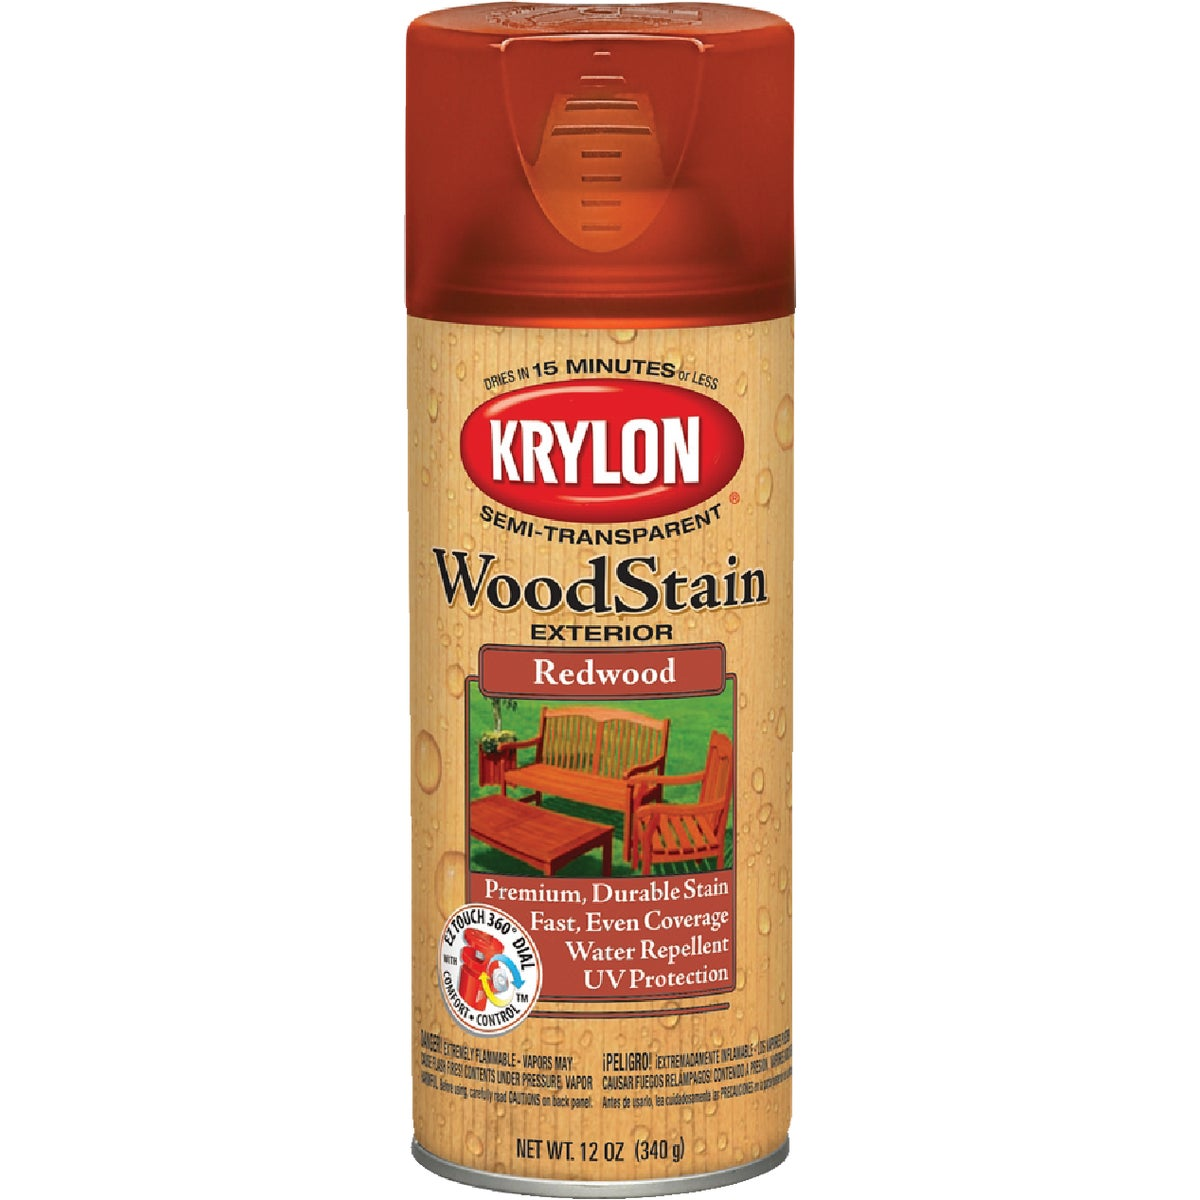 S/T REDWOOD SPRAY STAIN - 3604 by Krylon/consumer Div